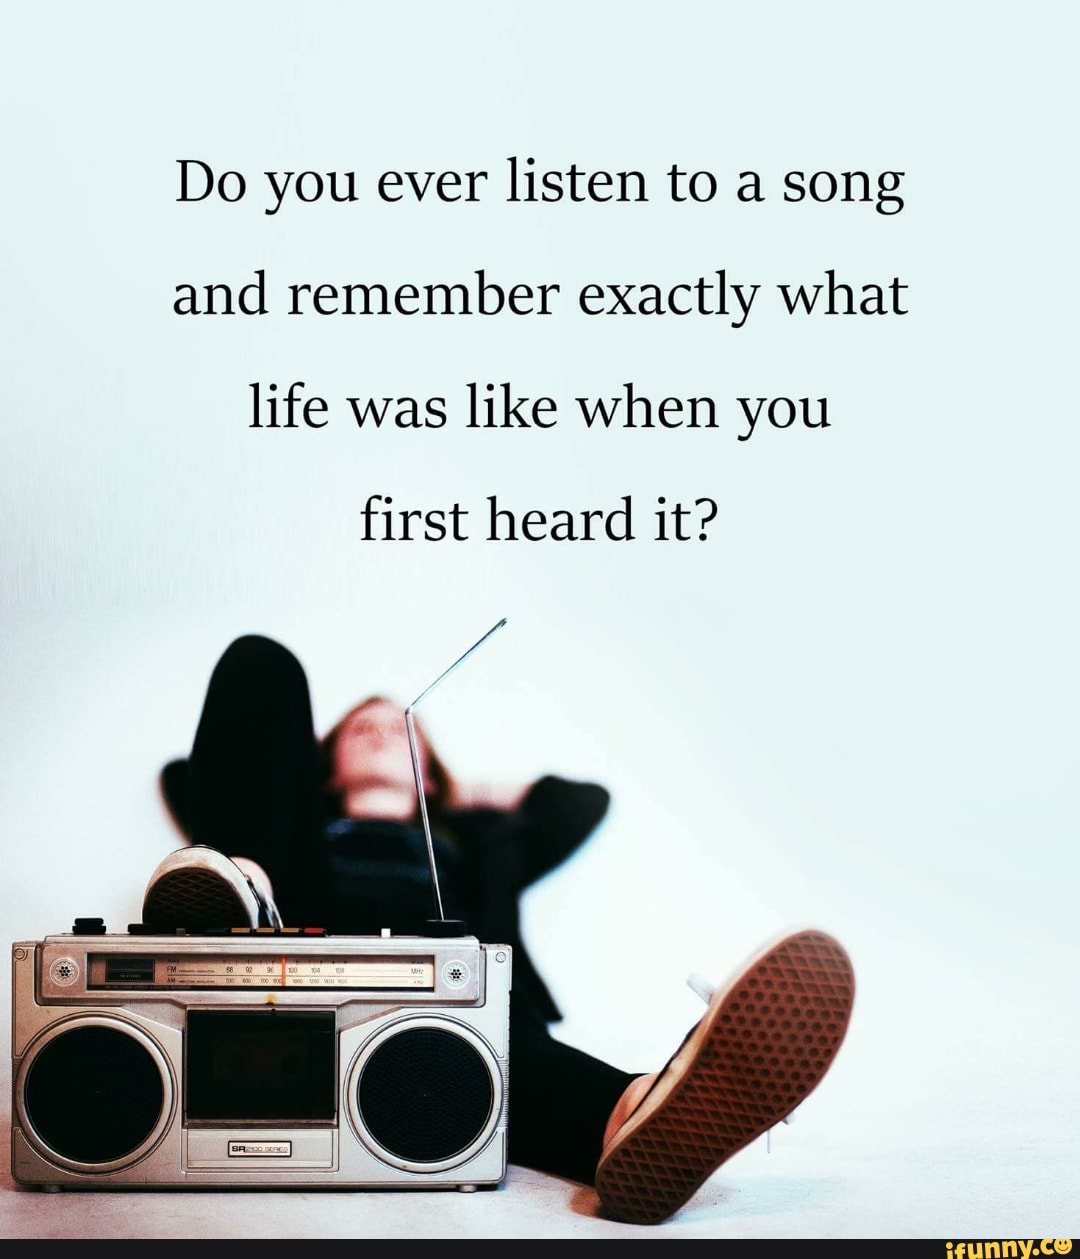 Do you ever listen to a song and remember exactly what life was like when you first heard it?